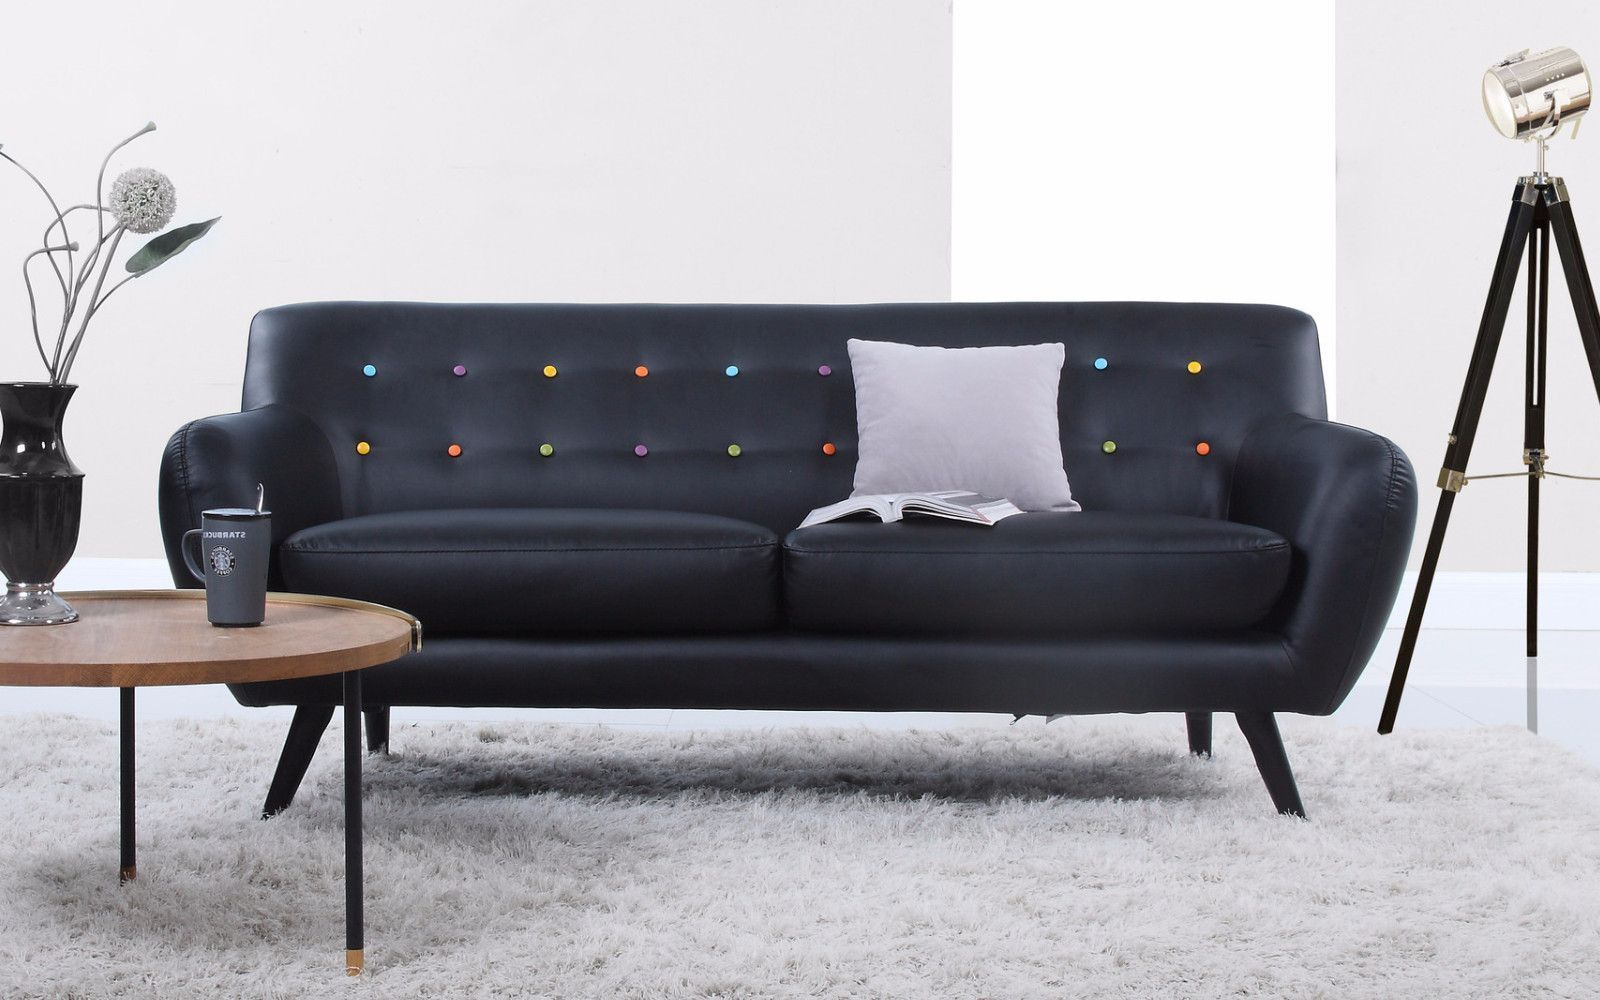 mid century modern tufted bonded leather sofa in color black with  - mid century modern tufted bonded leather sofa in color black with multicolor button details